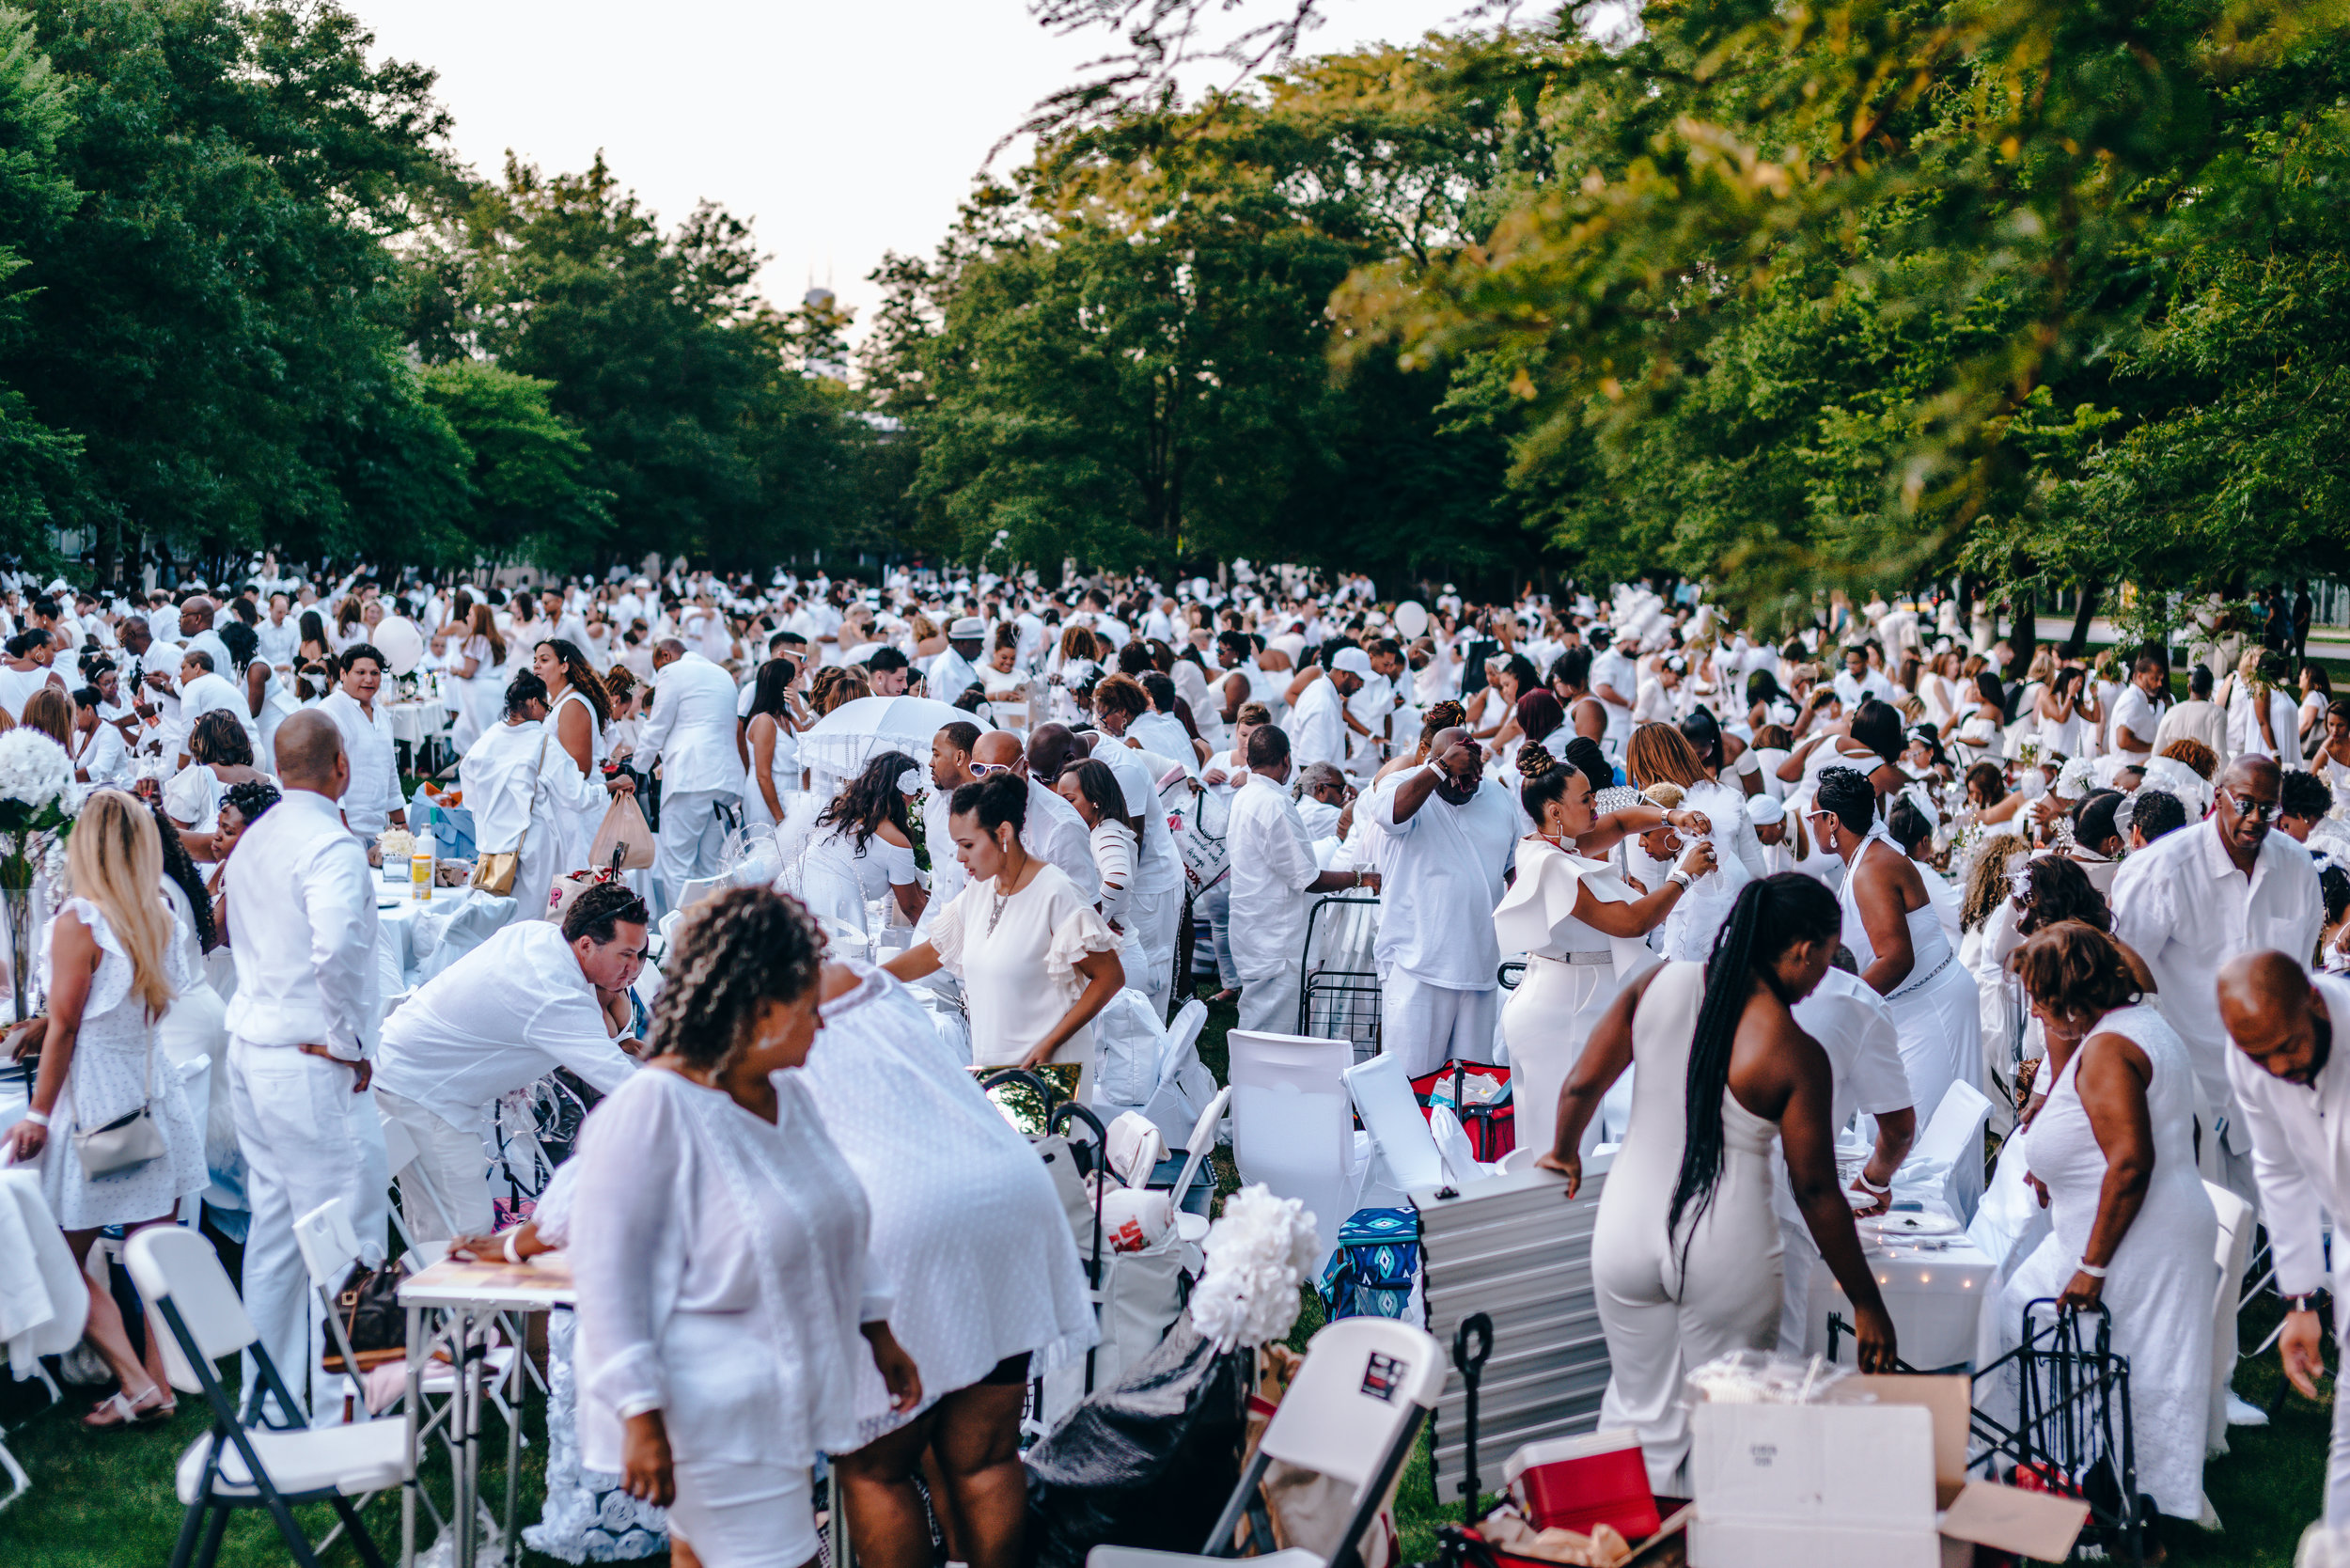 sofitel-diner-en-blanc-chicago-by-lisa-linh